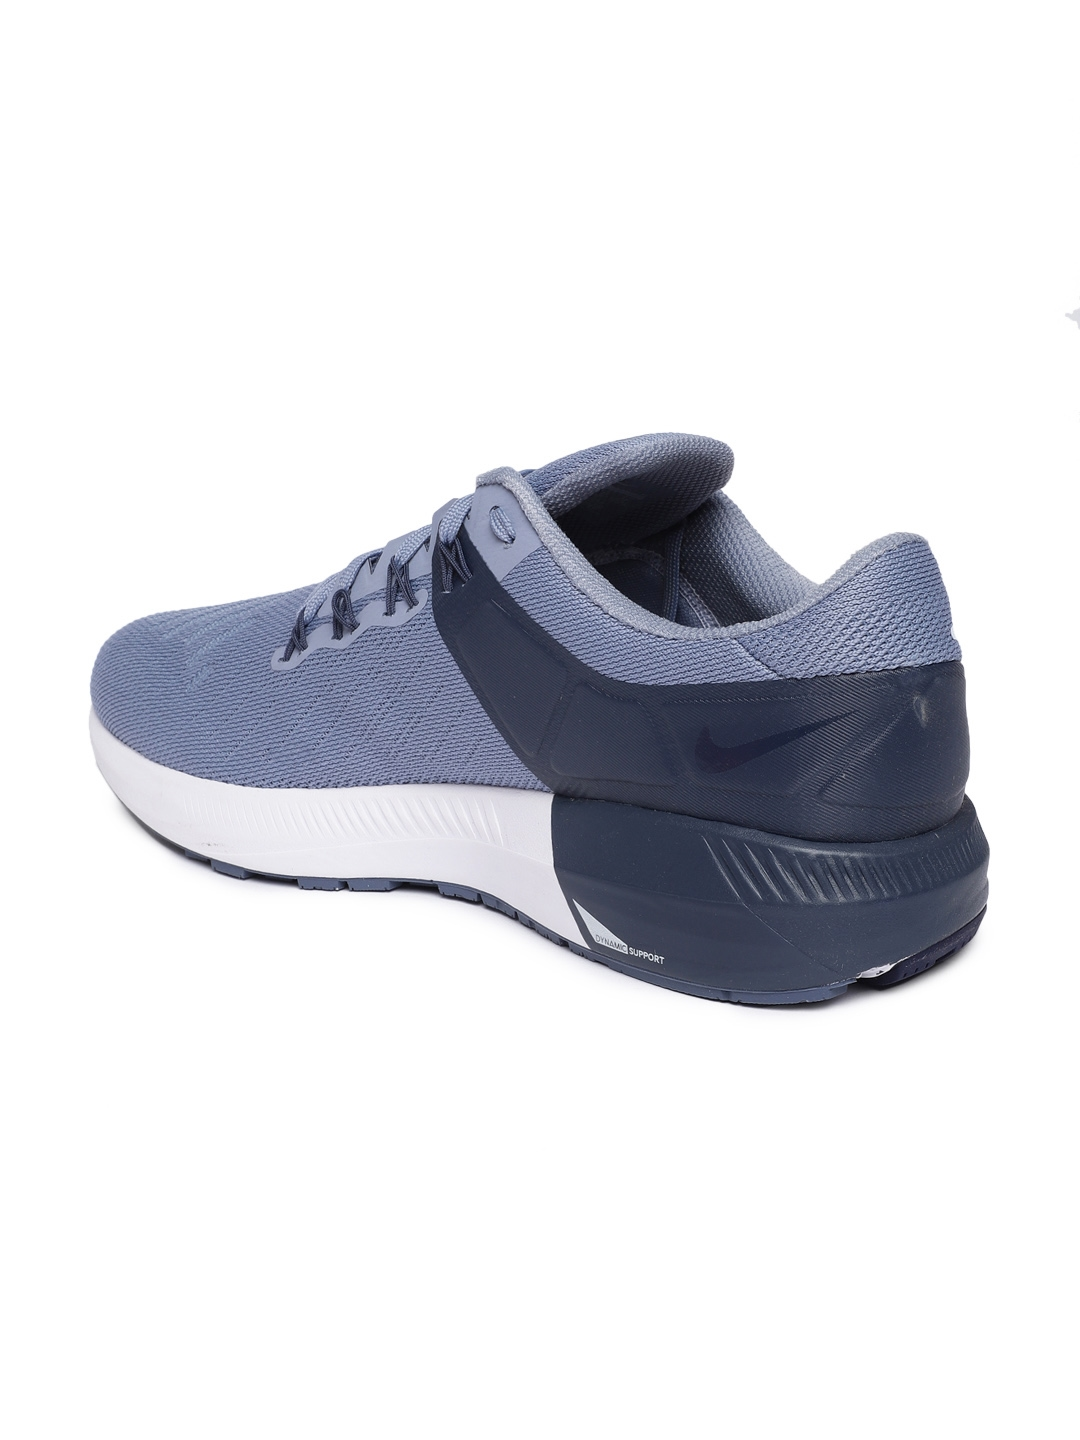 28e0df0560ccb Buy Nike Men Blue AIR ZOOM STRUCTURE 22 Running Shoes - Sports Shoes ...